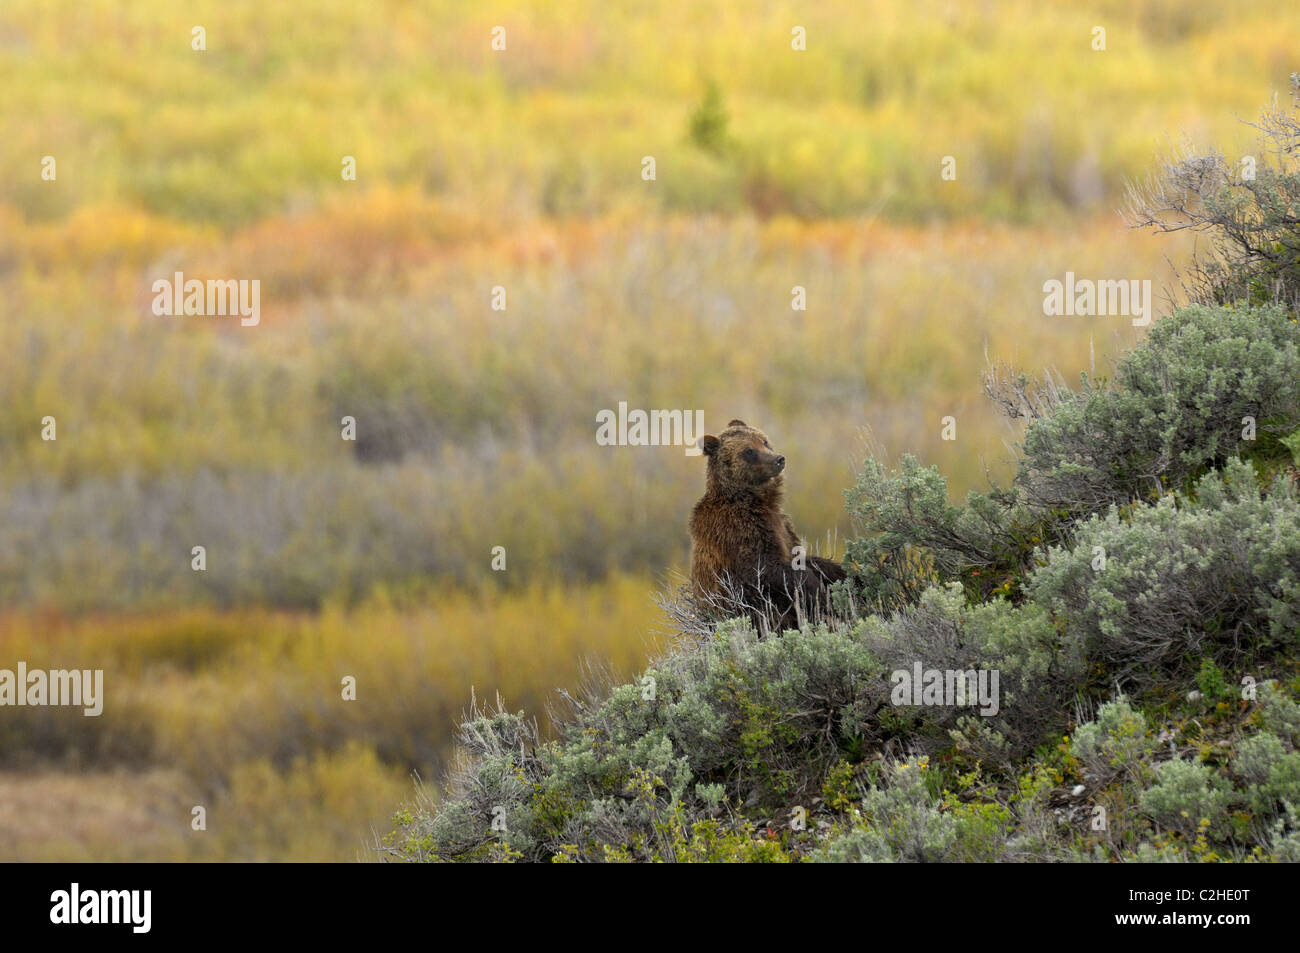 Grizzly Bear hillside seat - Stock Image